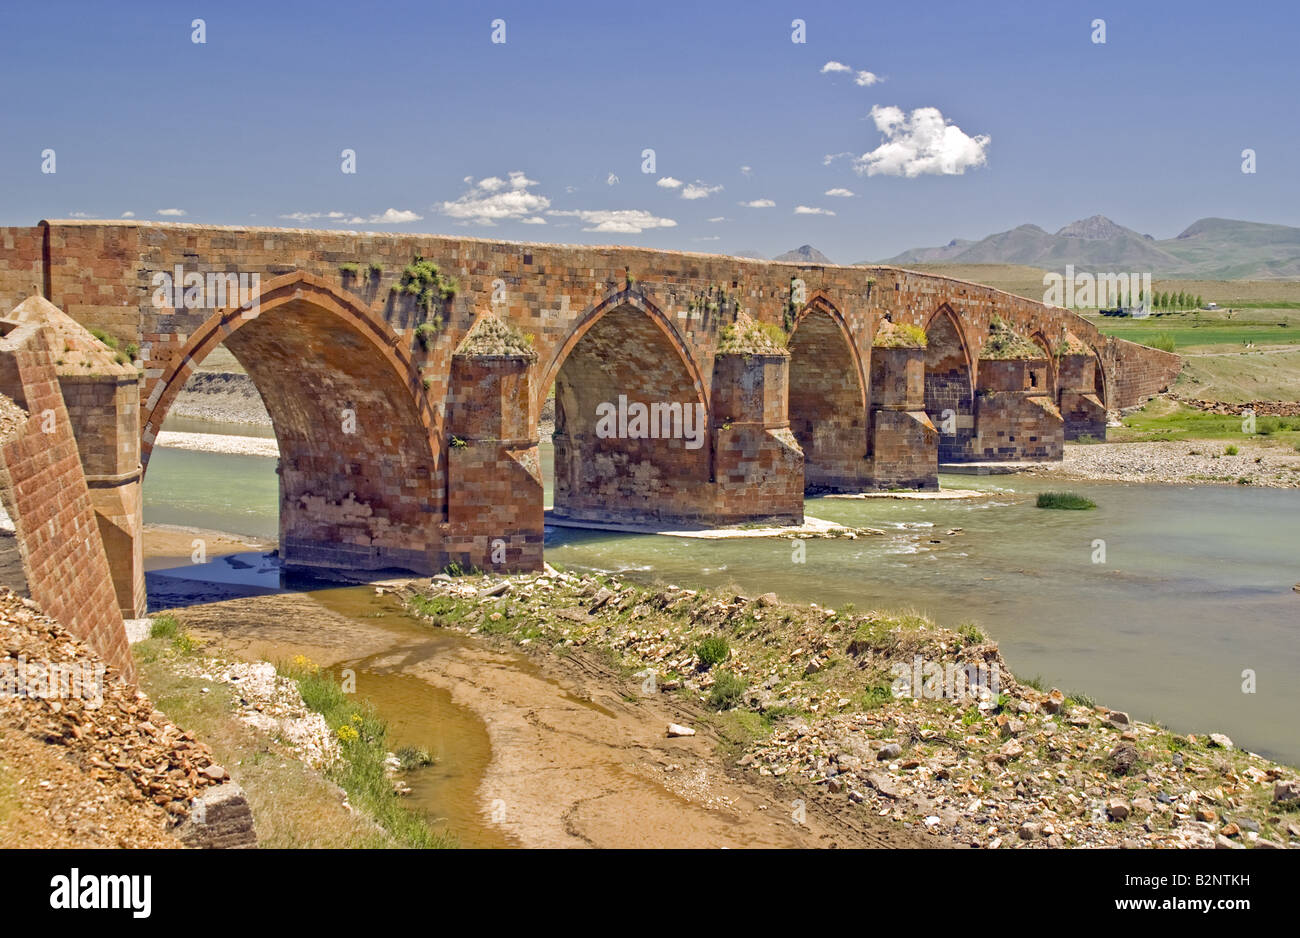 13th Century Ottoman Cobandede Bridge over Aras River between Pasinler and Horasan - Stock Image